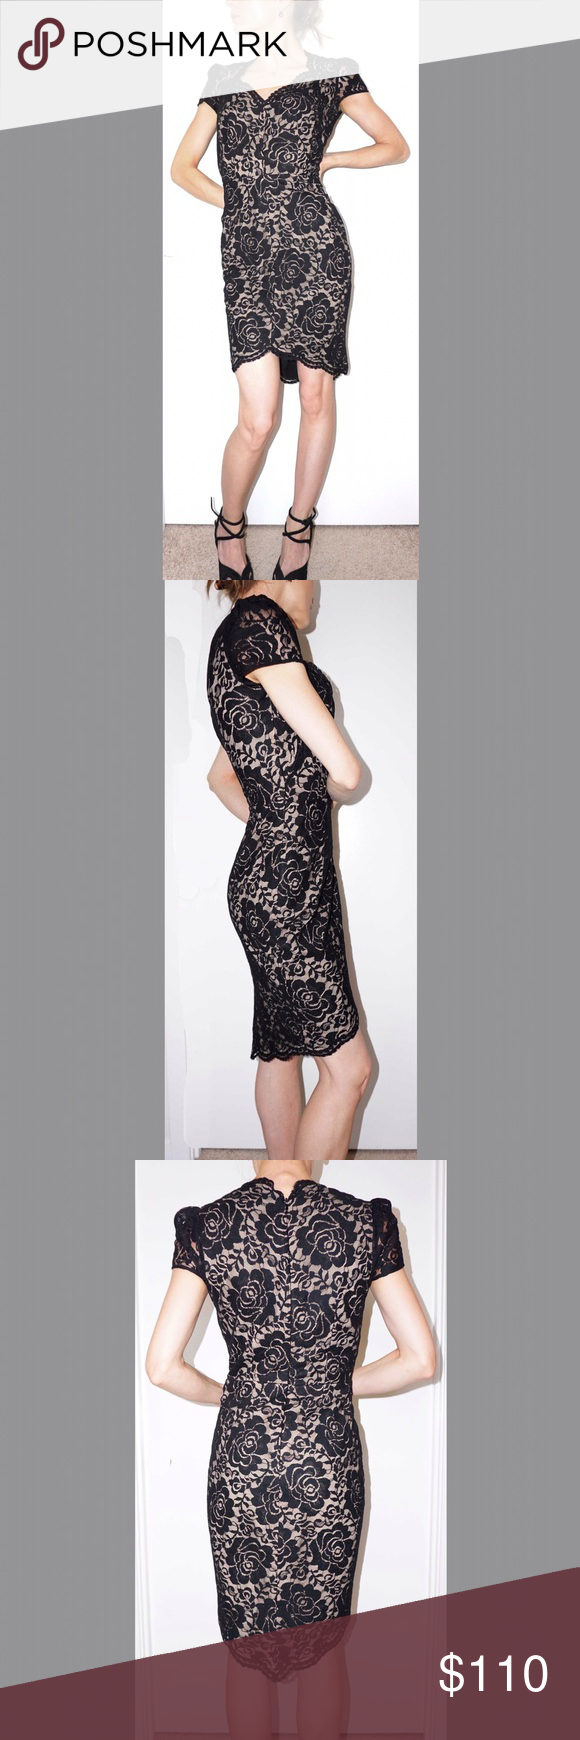 Lace below knee dress  Cynthia Steffe lace dress  Lace dress black Lace dress and Black laces